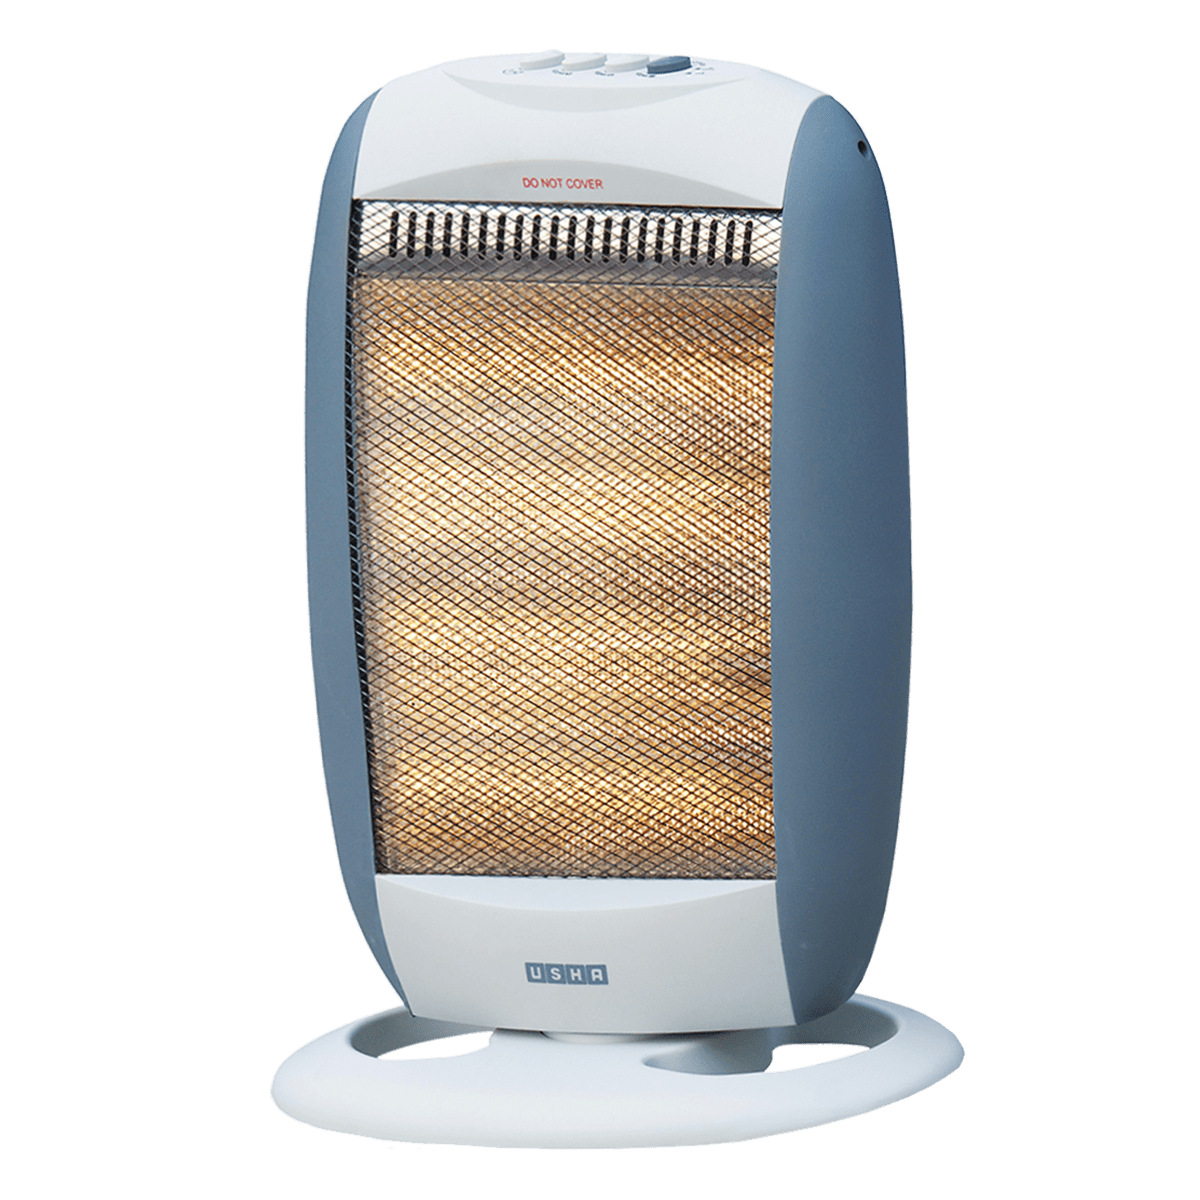 Usha 1200 Watts Halogen Room Heater (Automatic Oscillation, HH3303, Silver)